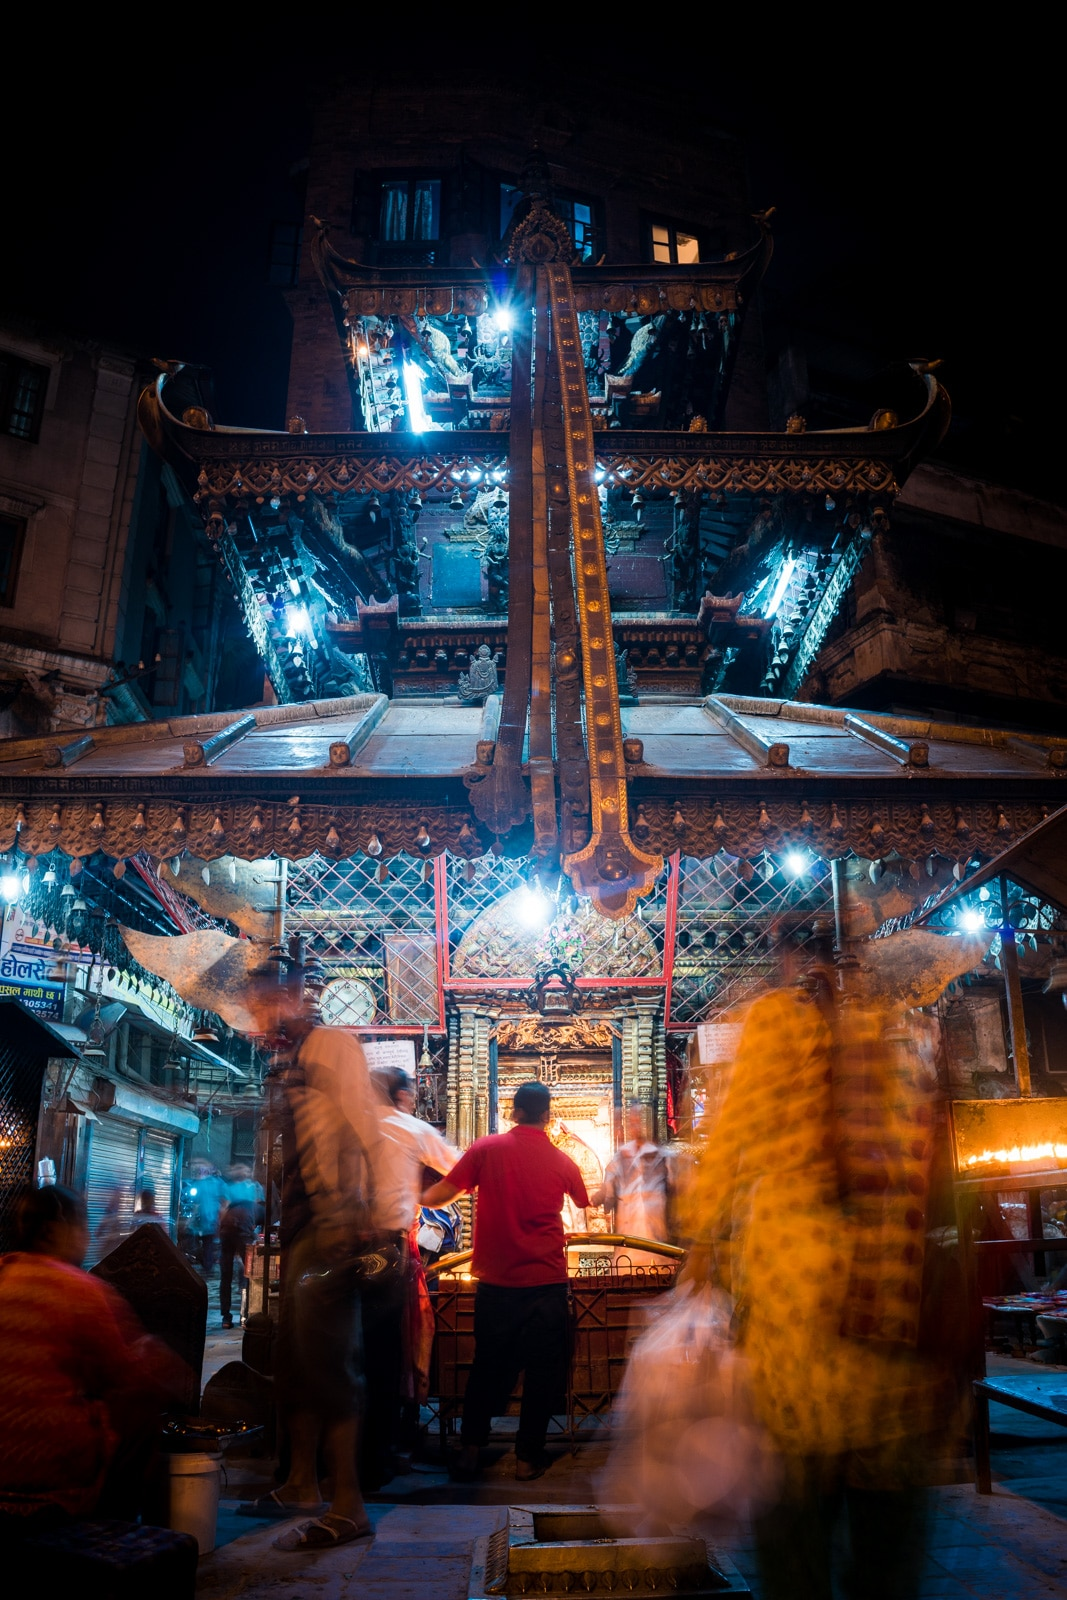 Nighttime activity at one of many Buddhist temples on the streets of Kathmandu, Nepal.